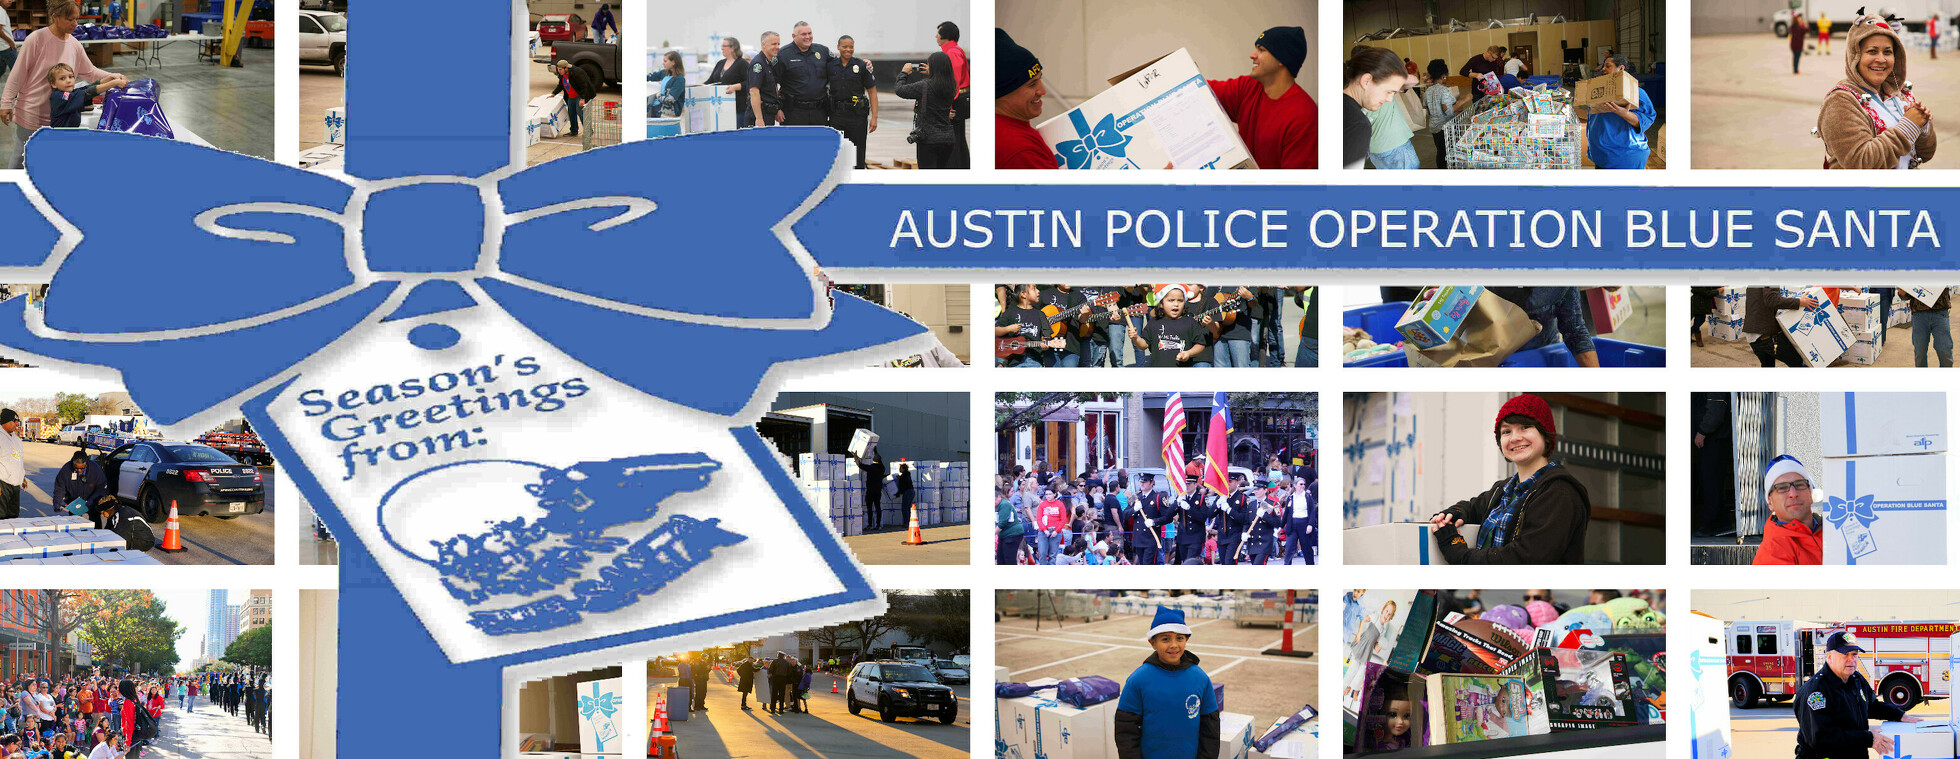 AUSTIN POLICE OPERATION BLUE SANTA VIRTUAL AUCTION